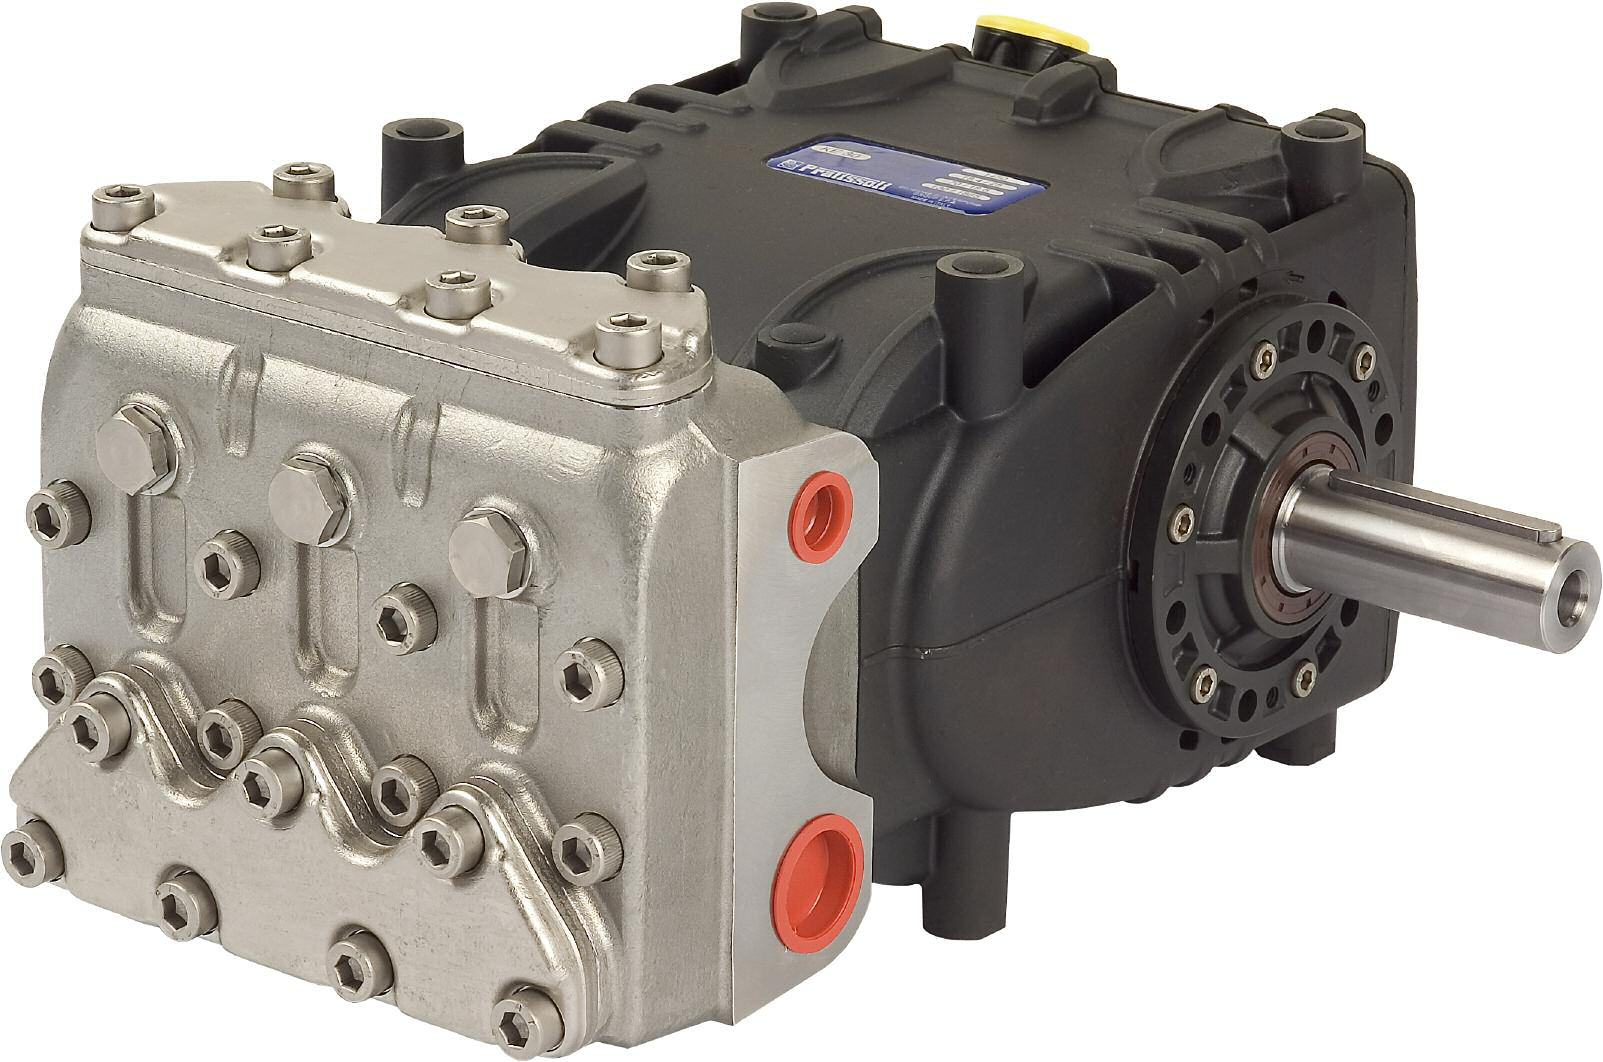 Ke Series Pressure Washer Pumps From General Pumps Replace